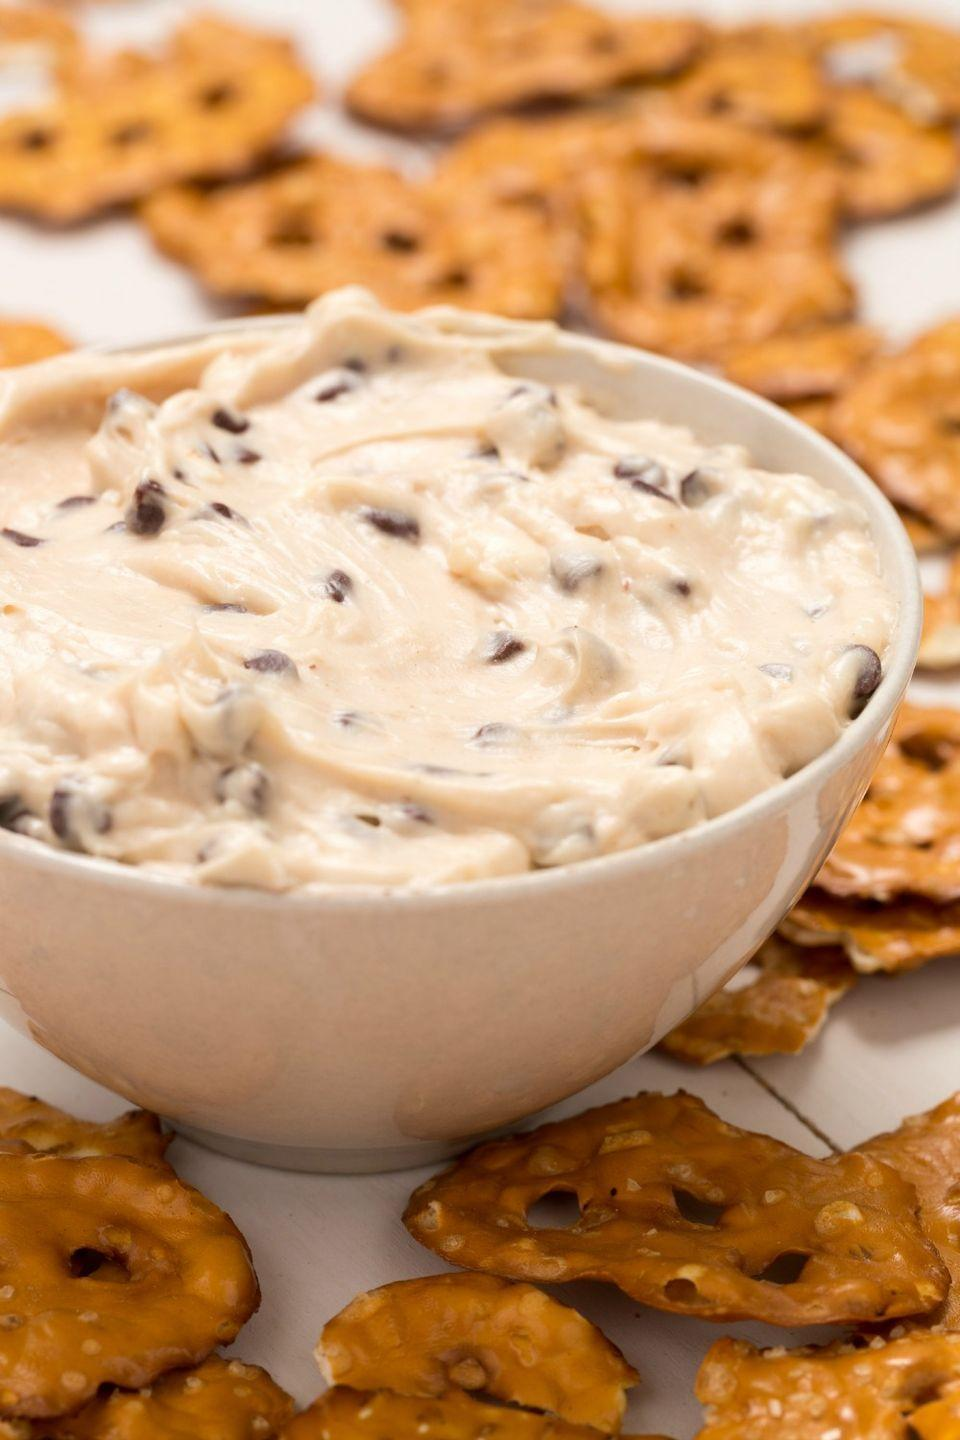 """<p>The dough is the real reason you bake cookies, anyway.</p><p>Get the recipe from <a href=""""https://www.delish.com/cooking/recipe-ideas/recipes/a43772/cookie-dough-dip-recipe/"""" rel=""""nofollow noopener"""" target=""""_blank"""" data-ylk=""""slk:Delish"""" class=""""link rapid-noclick-resp"""">Delish</a>.</p>"""